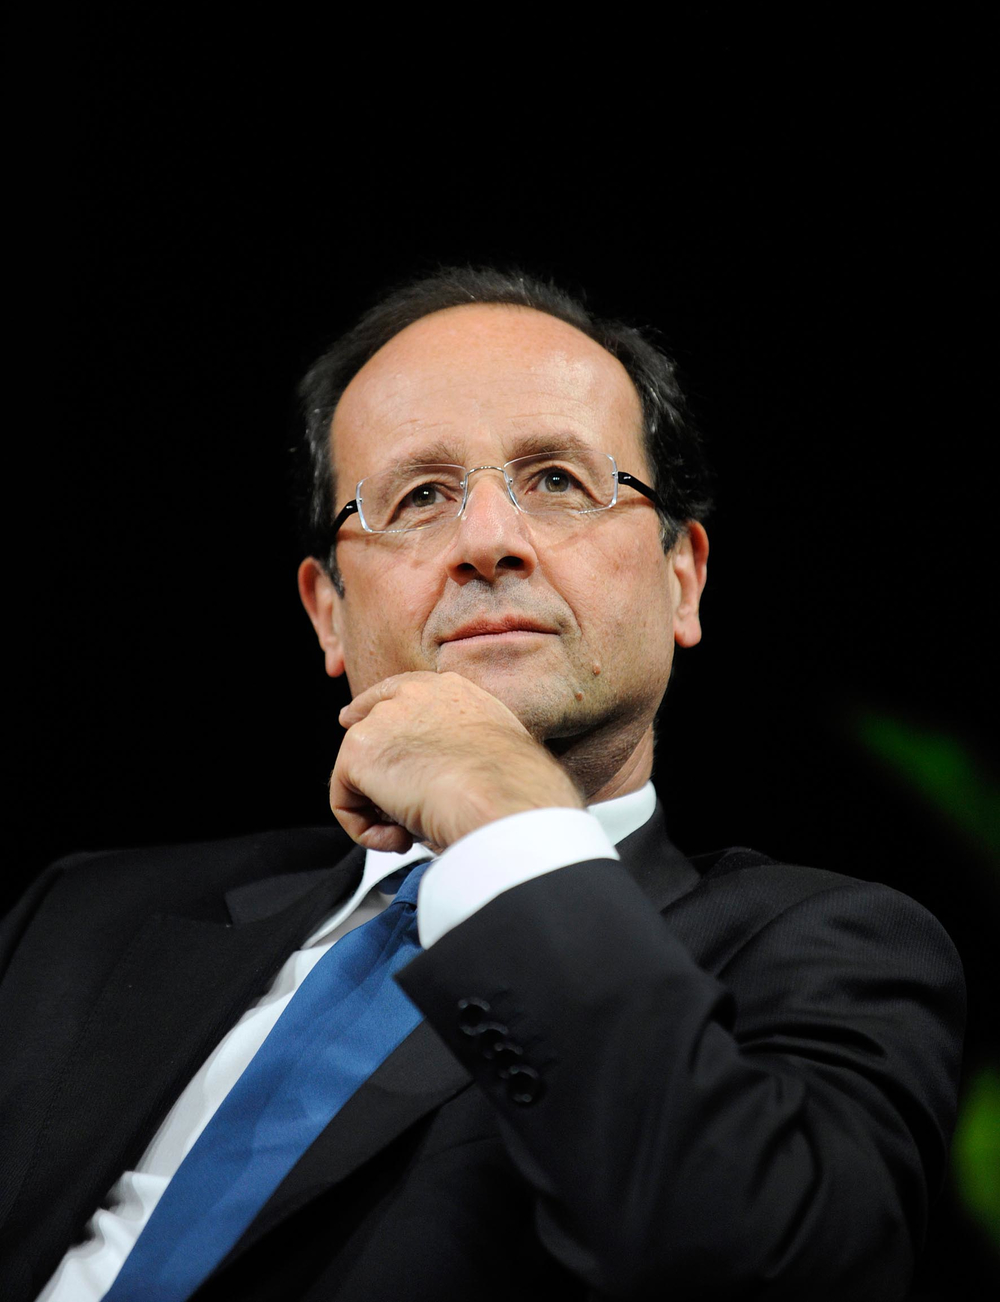 French President Francois Hollande. Credit: Wikimedia Commons.